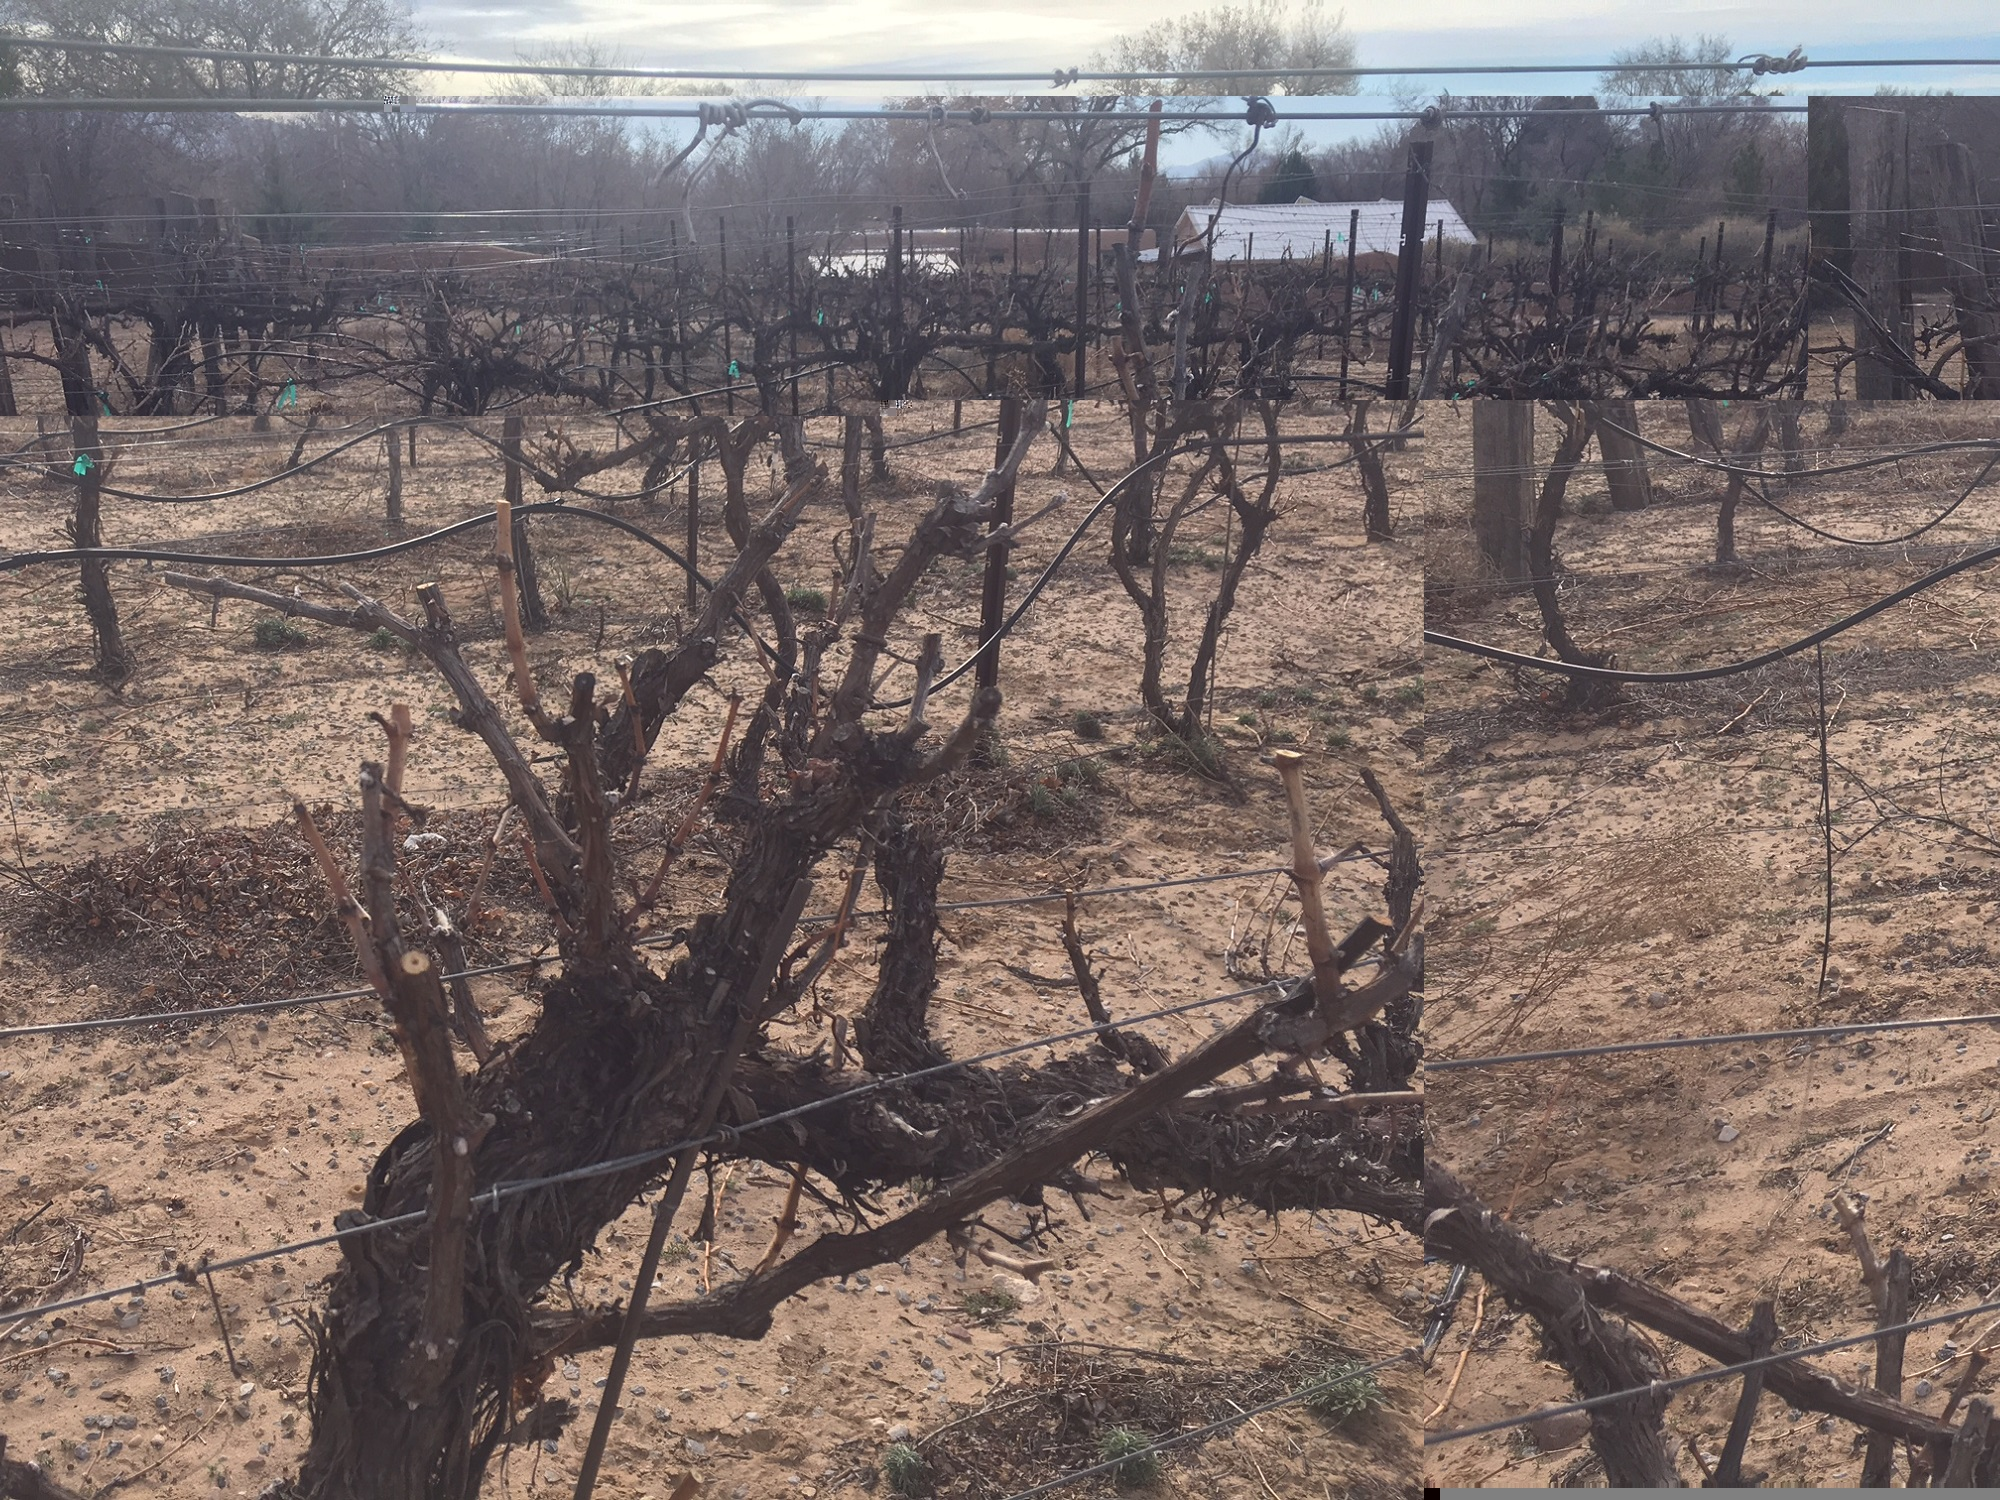 After pruning, the vines are symmetrical and even. Pruning will allow the vines to grow a good crop of grapes without too many branches and too many leaves.